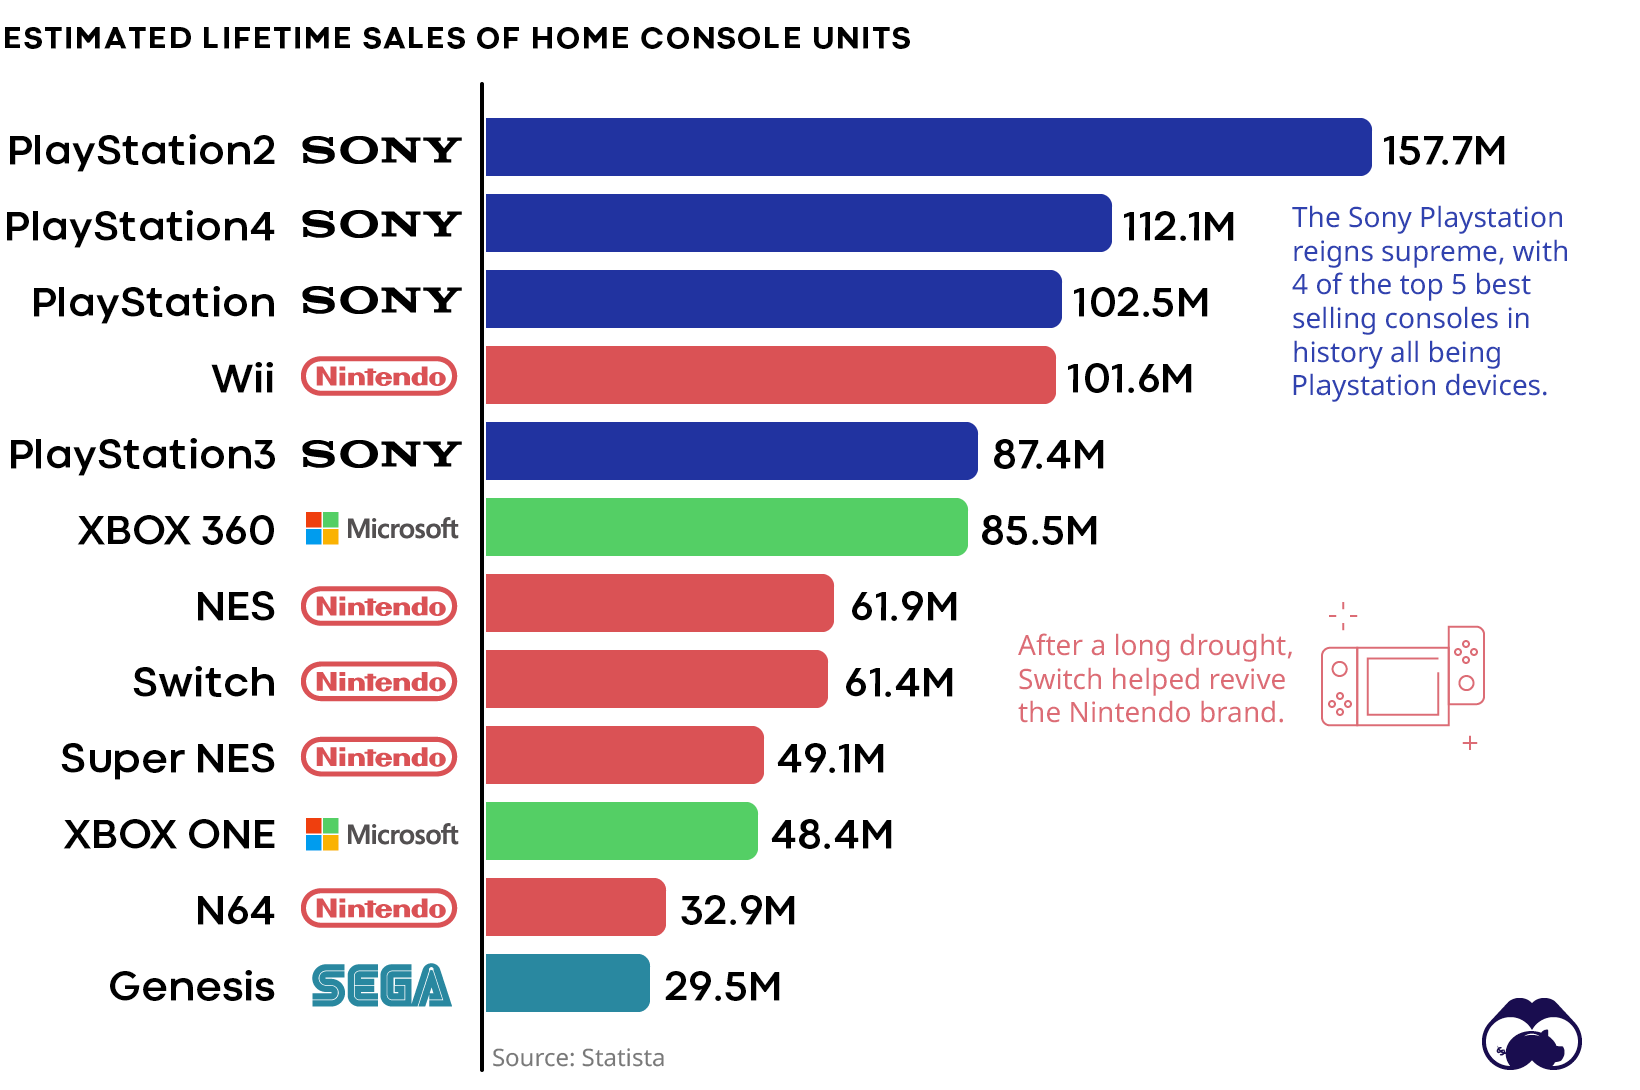 Historical game console unit sales